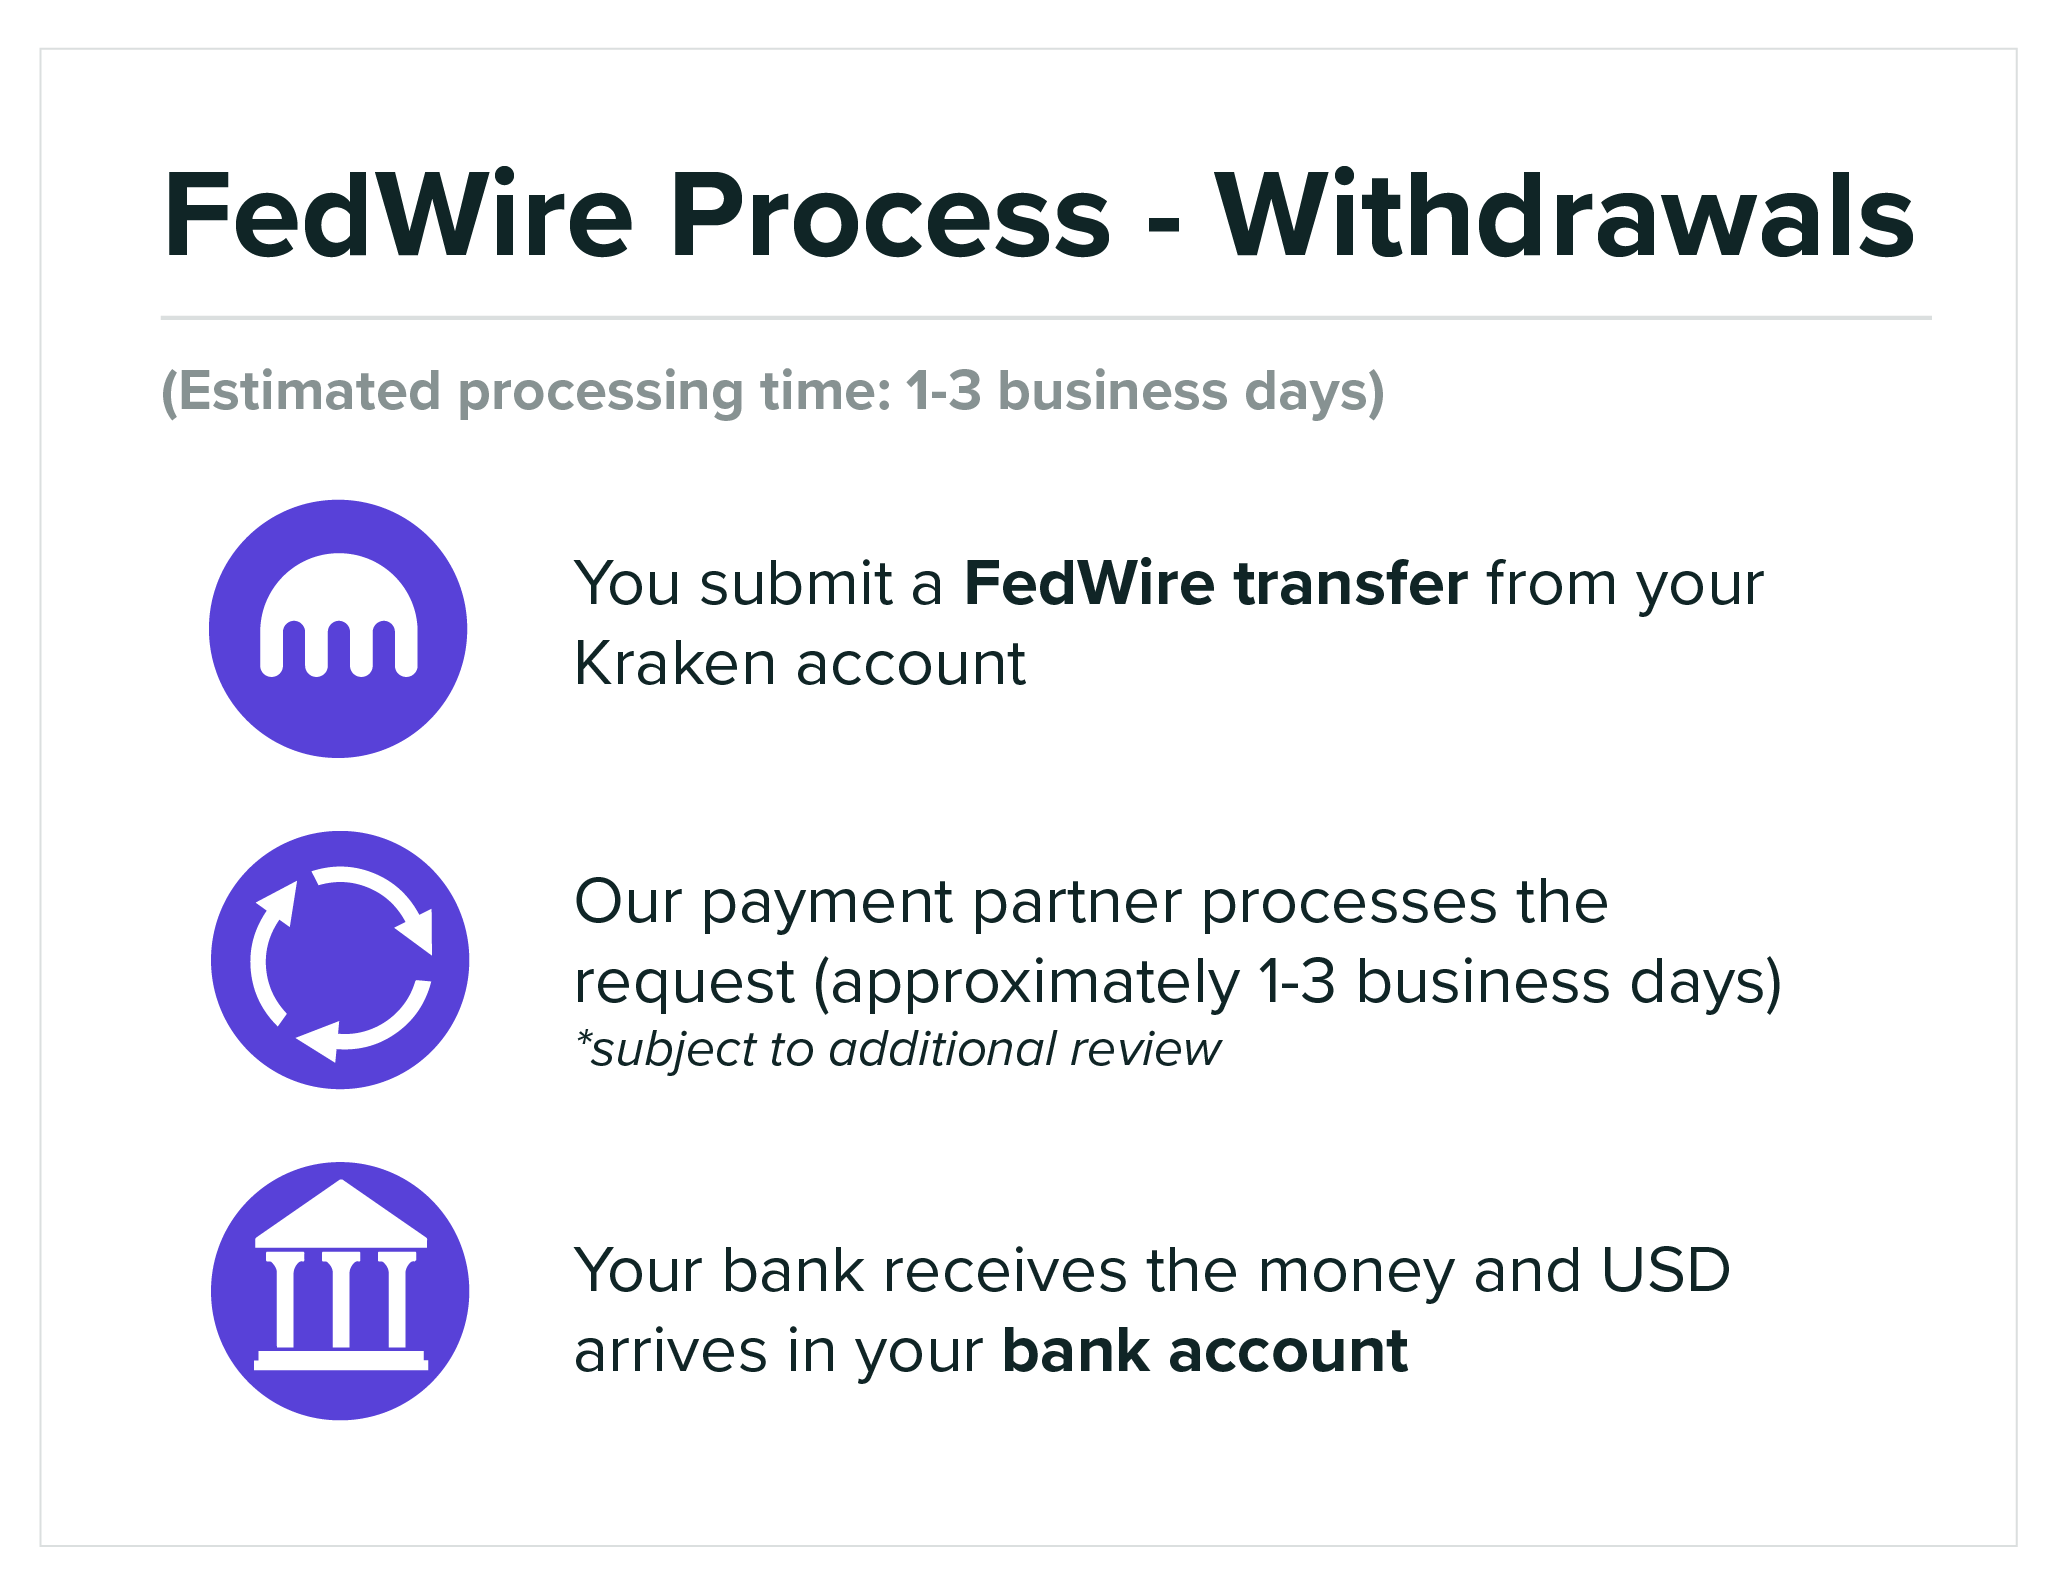 Funding_FedWireProcessWithdrawals_10072020.png